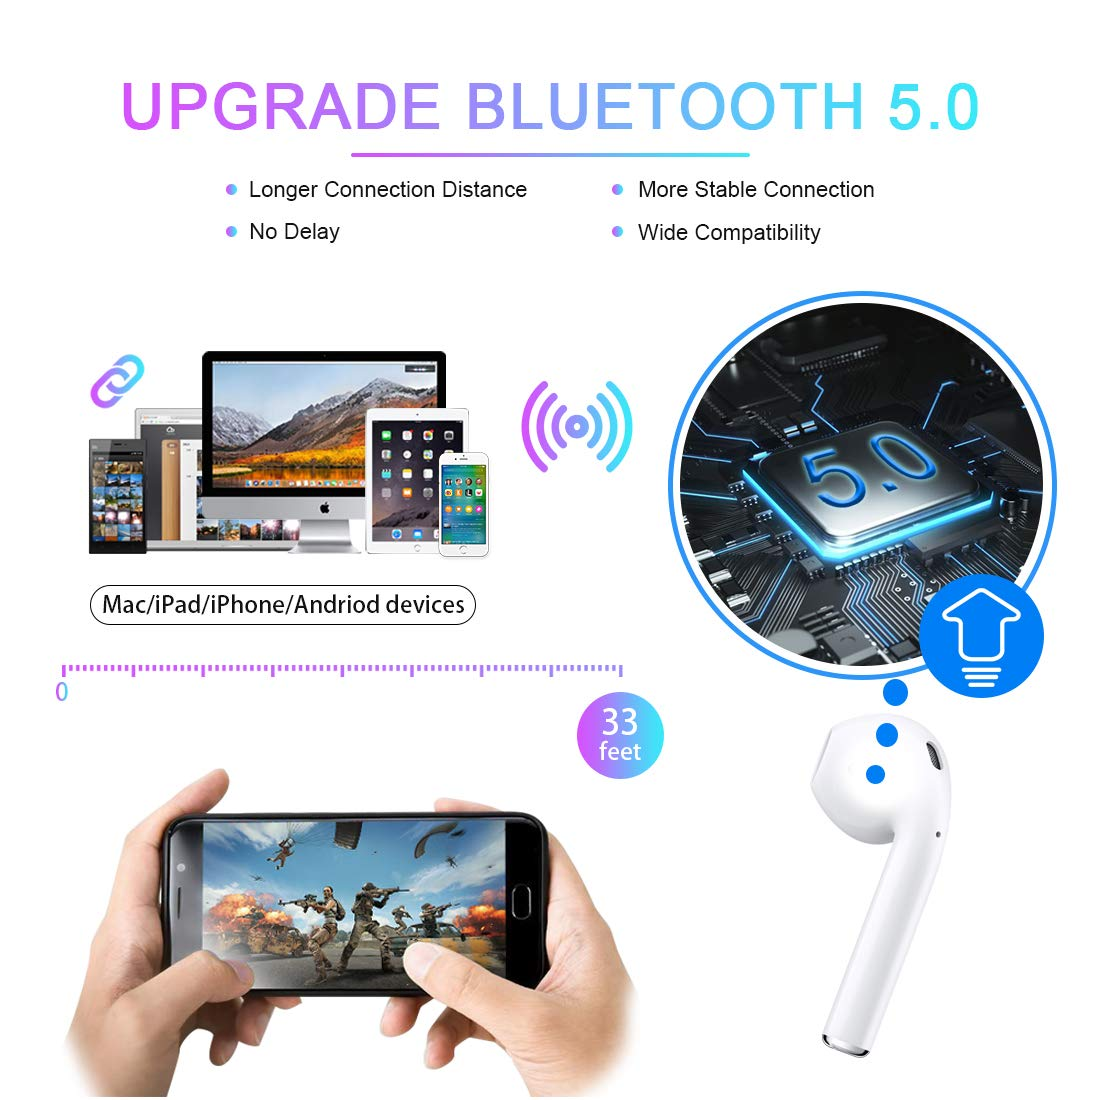 Wireless Earbuds Bluetooth 5.0 Headsets 3D Stereo Headphones with Fast Charging Case,Auto Pairing in-Ear Ear Buds IPX5 Waterproof Mini Sports Earphones for iPhone Apple Airpods Bluetooth Earbuds